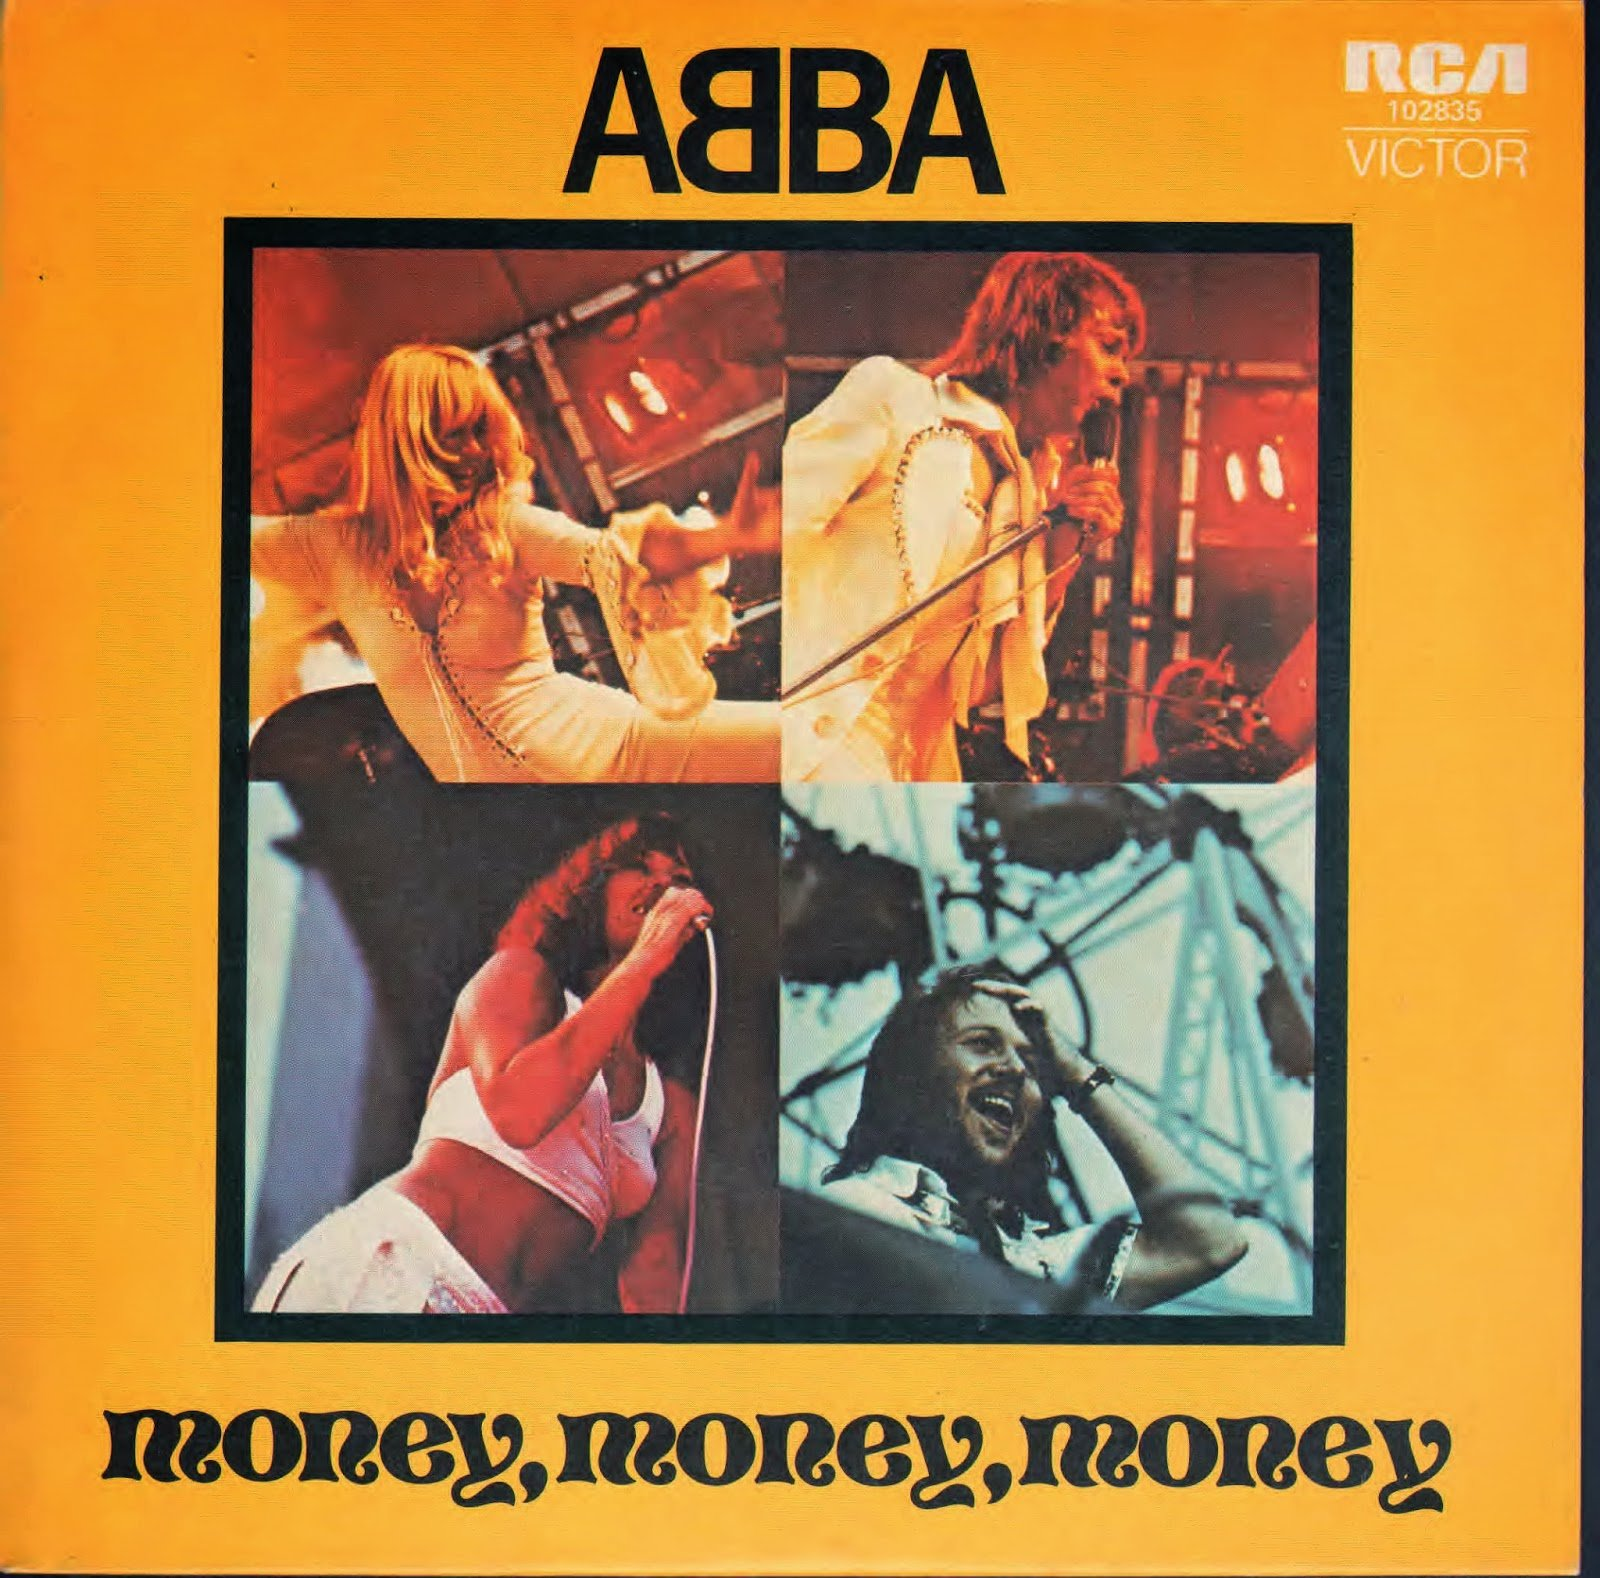 money 3 40 Things You Probably Didn't Know About ABBA